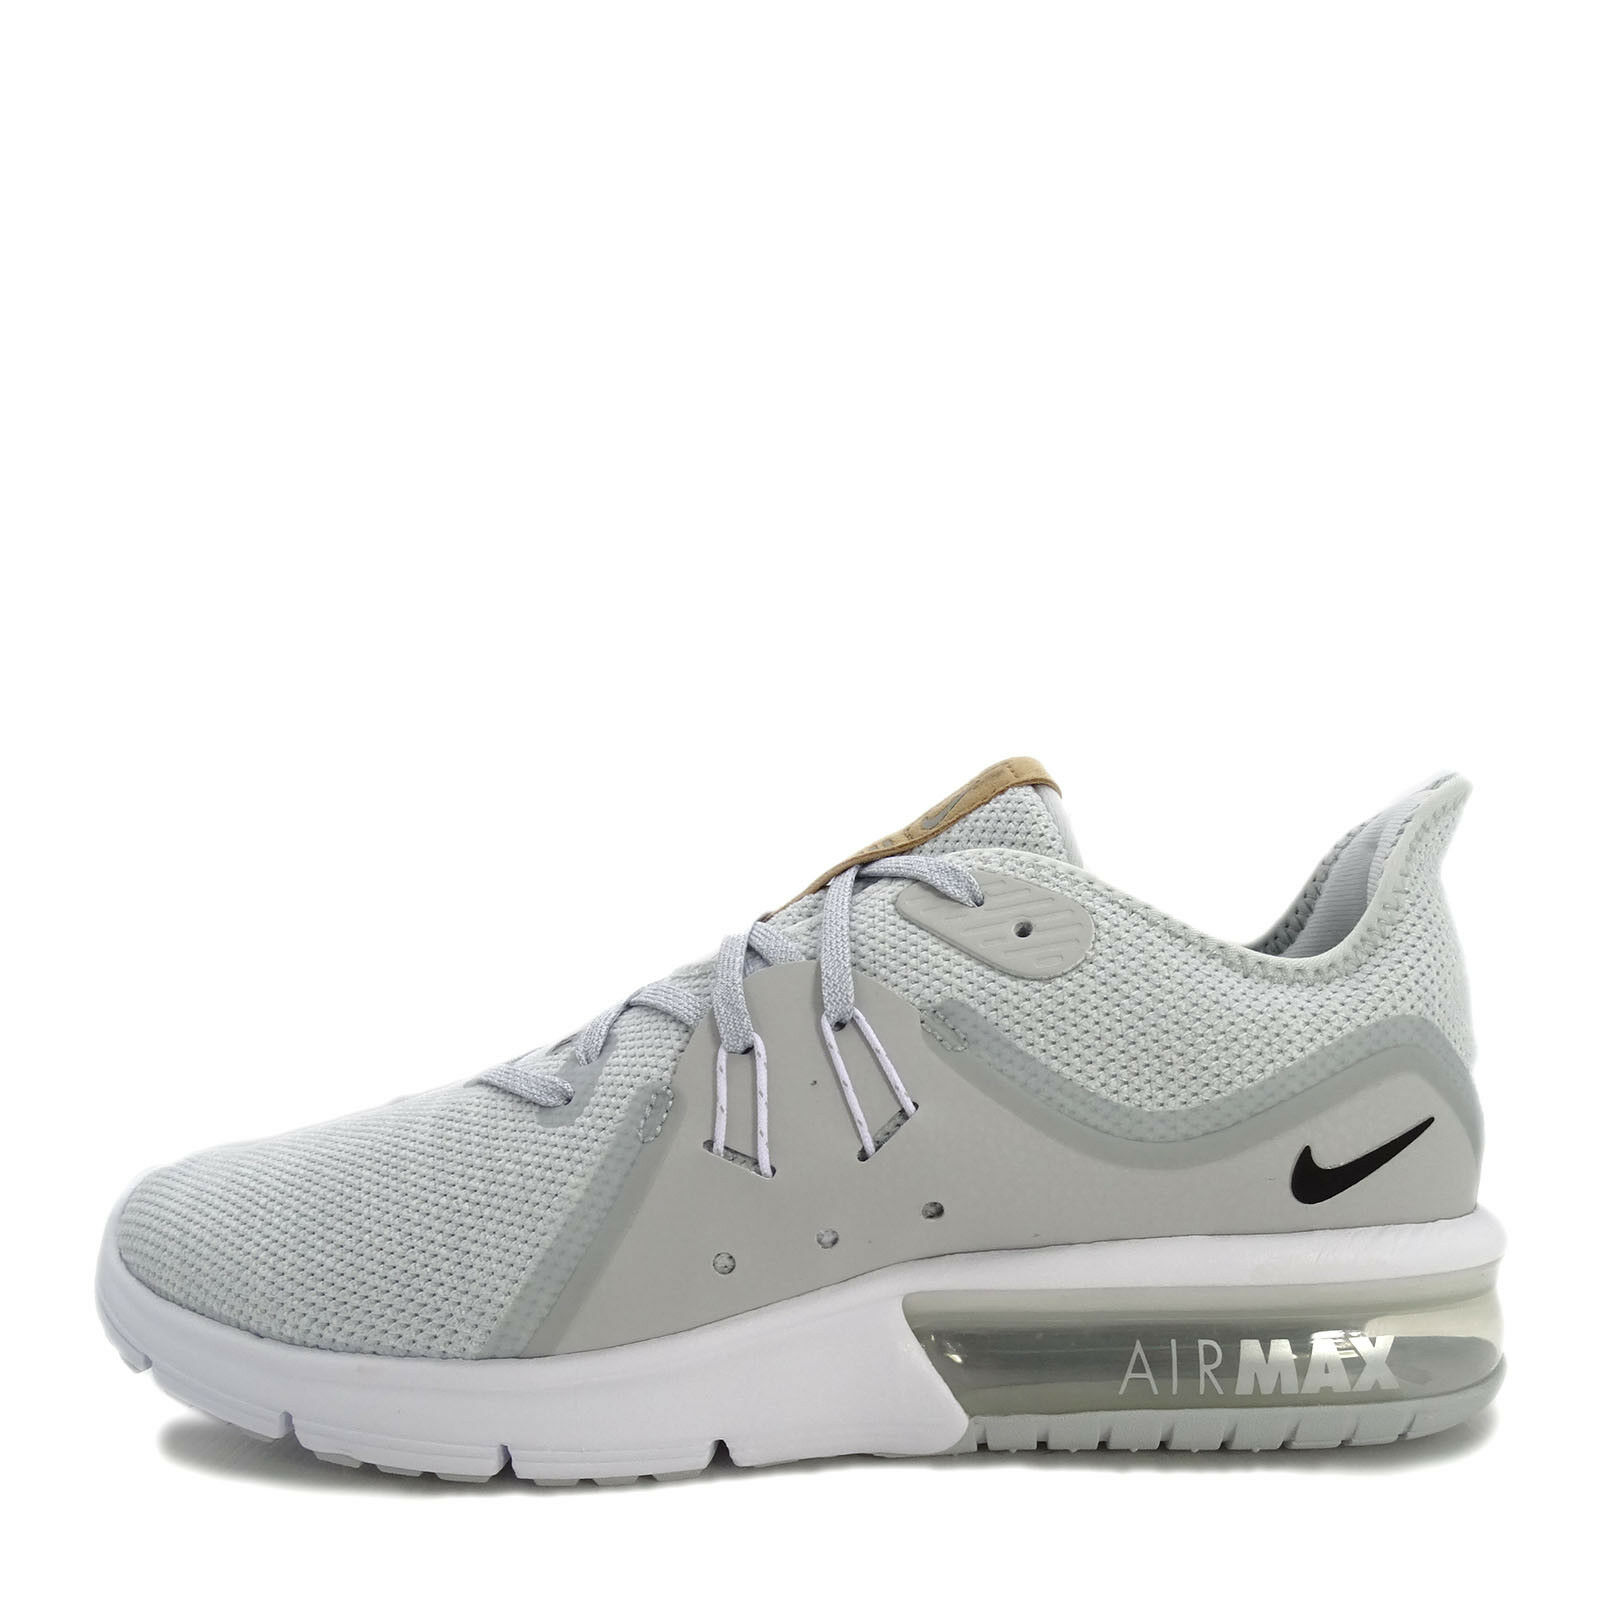 Nike Air Max Sequent 3 Price reduction Men Running Shoes Platinum/Black/White Cheap women's shoes women's shoes